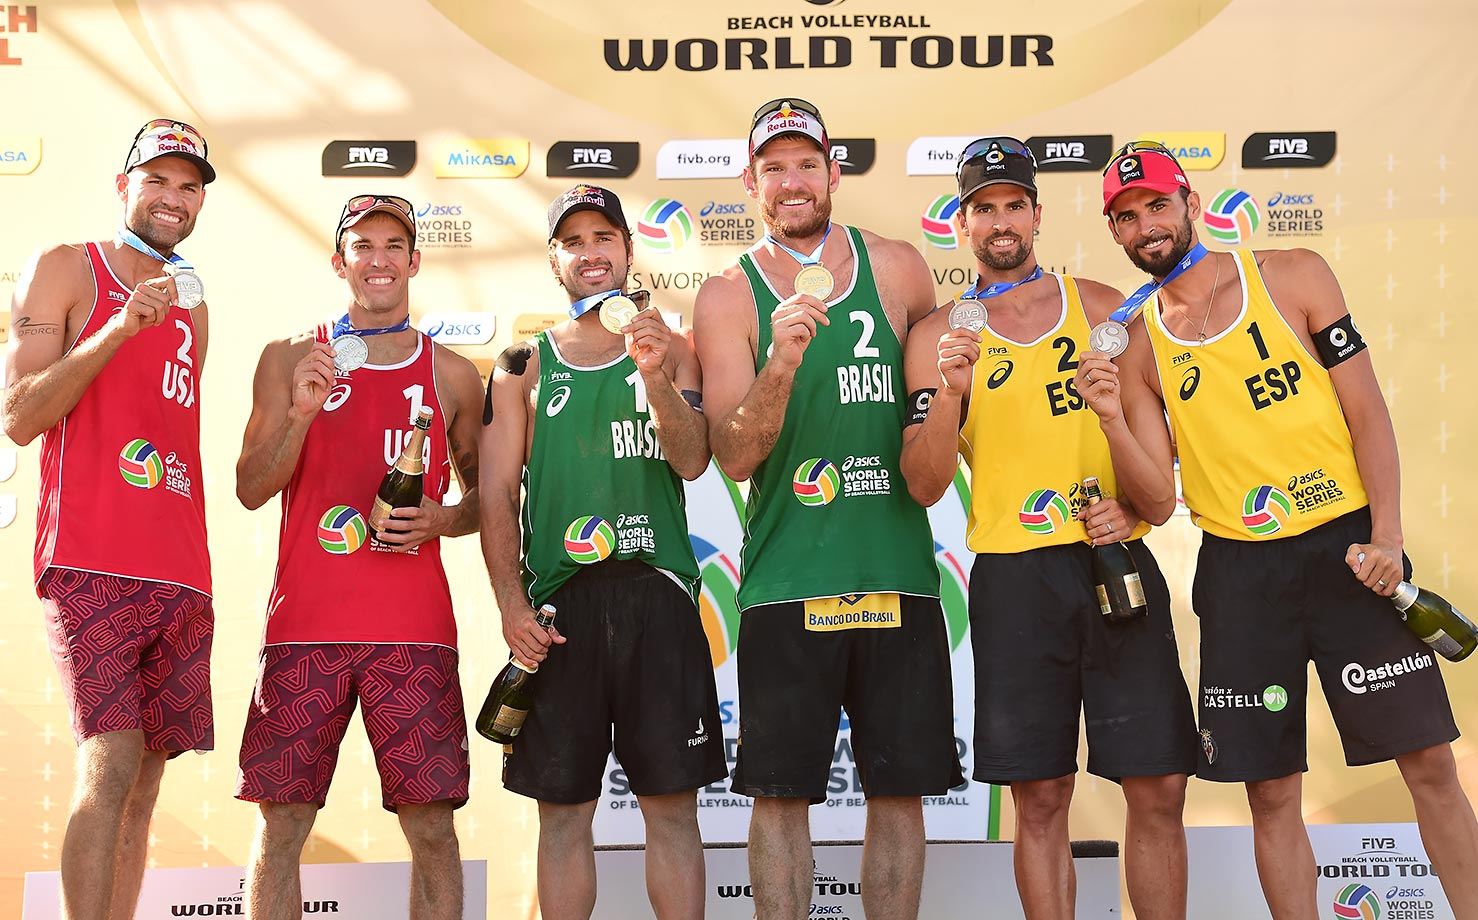 The men's medalists: Silver:Team USA (Dalhausser/Lucena); Gold: Team Brazil (Cerutti/Schmidt); Bronze: Team Spain (Herrera/Gavira).